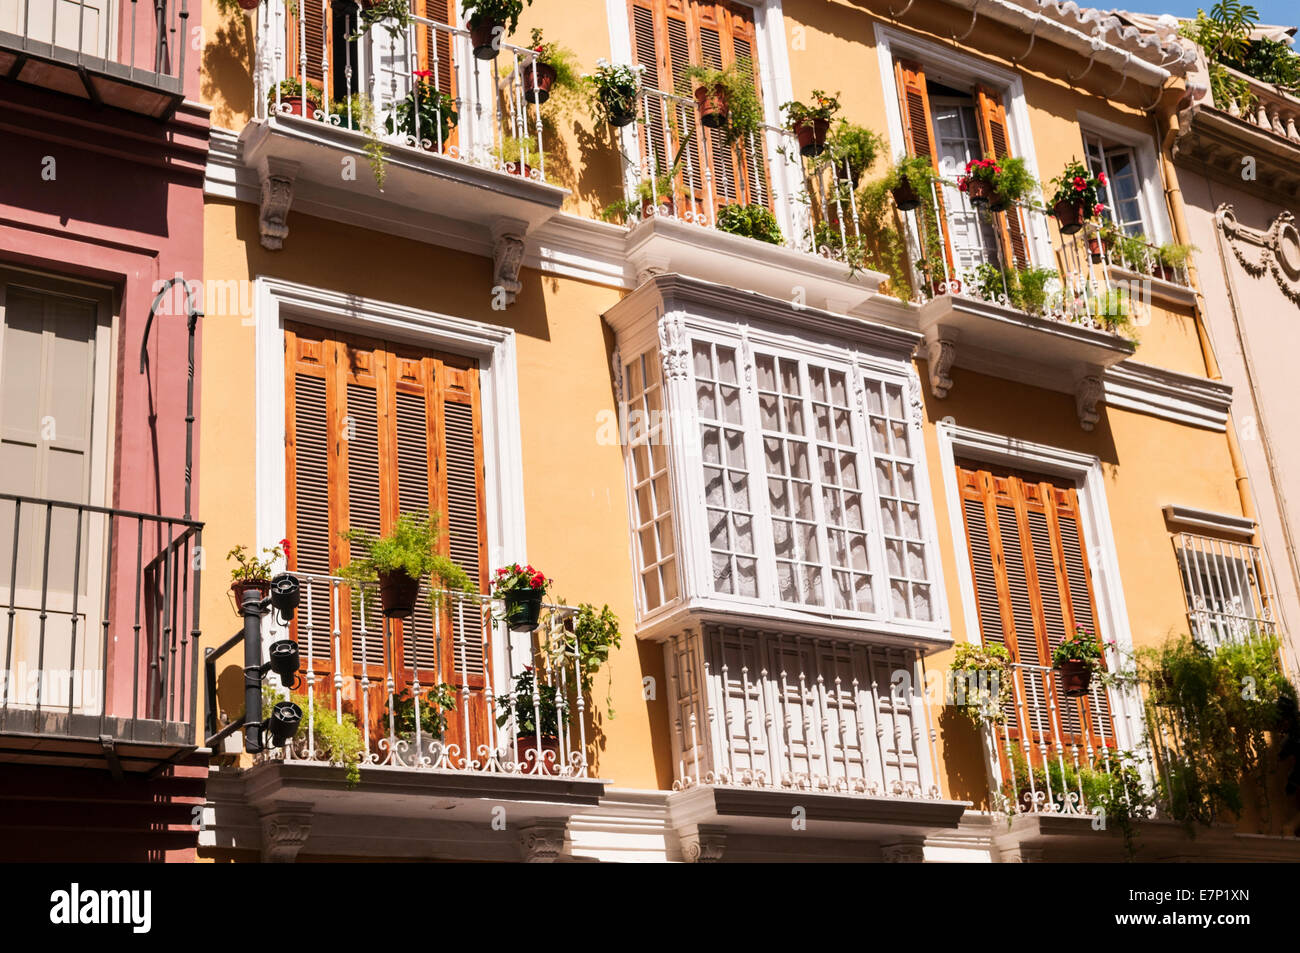 Windows and balconies Malaga Andalusia Spain - Stock Image